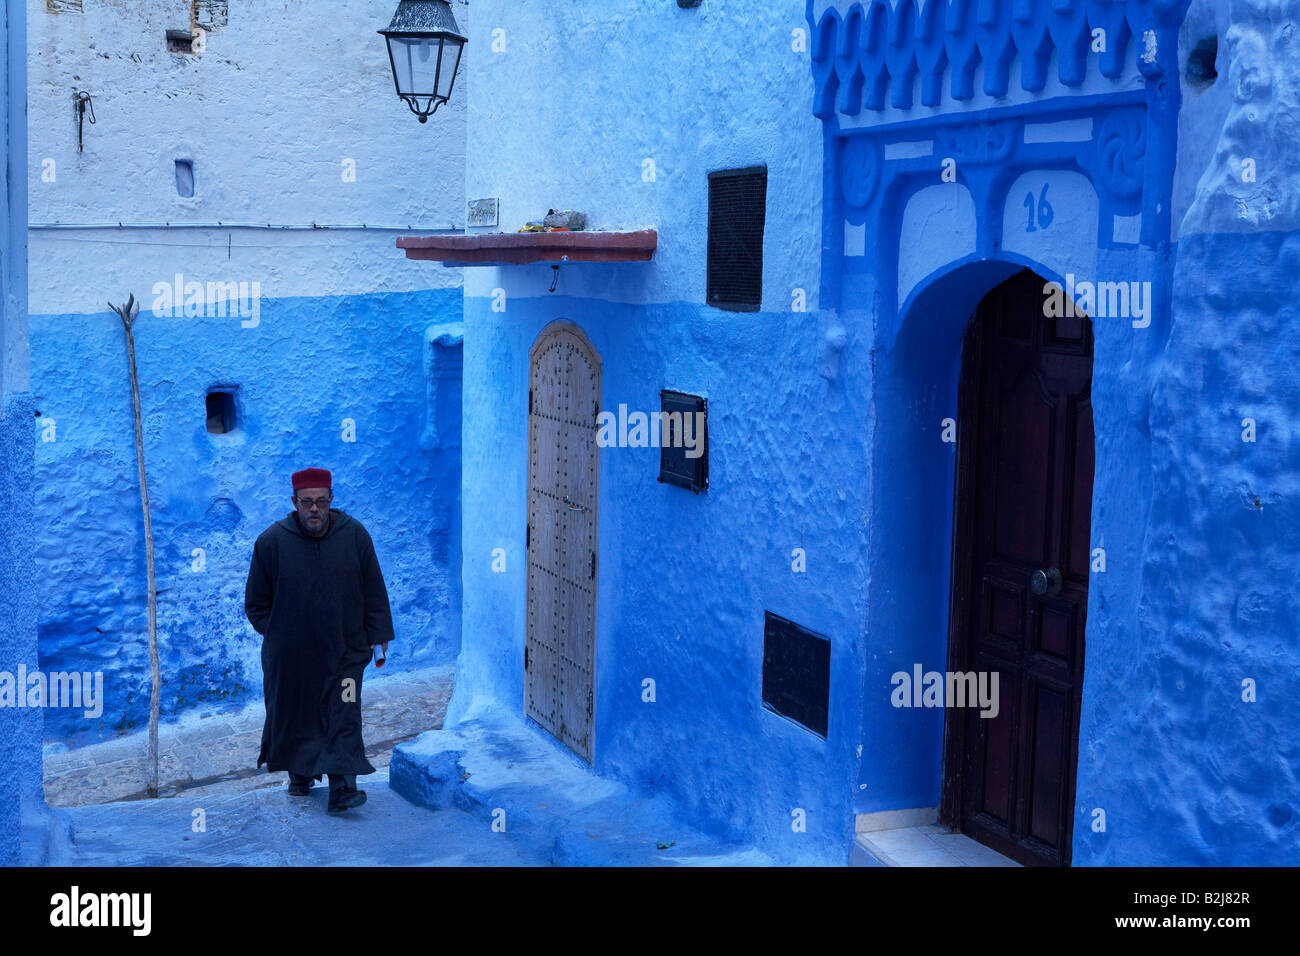 street scenes in the blue walled town of Chefchaouen, Morocco Stock Photo